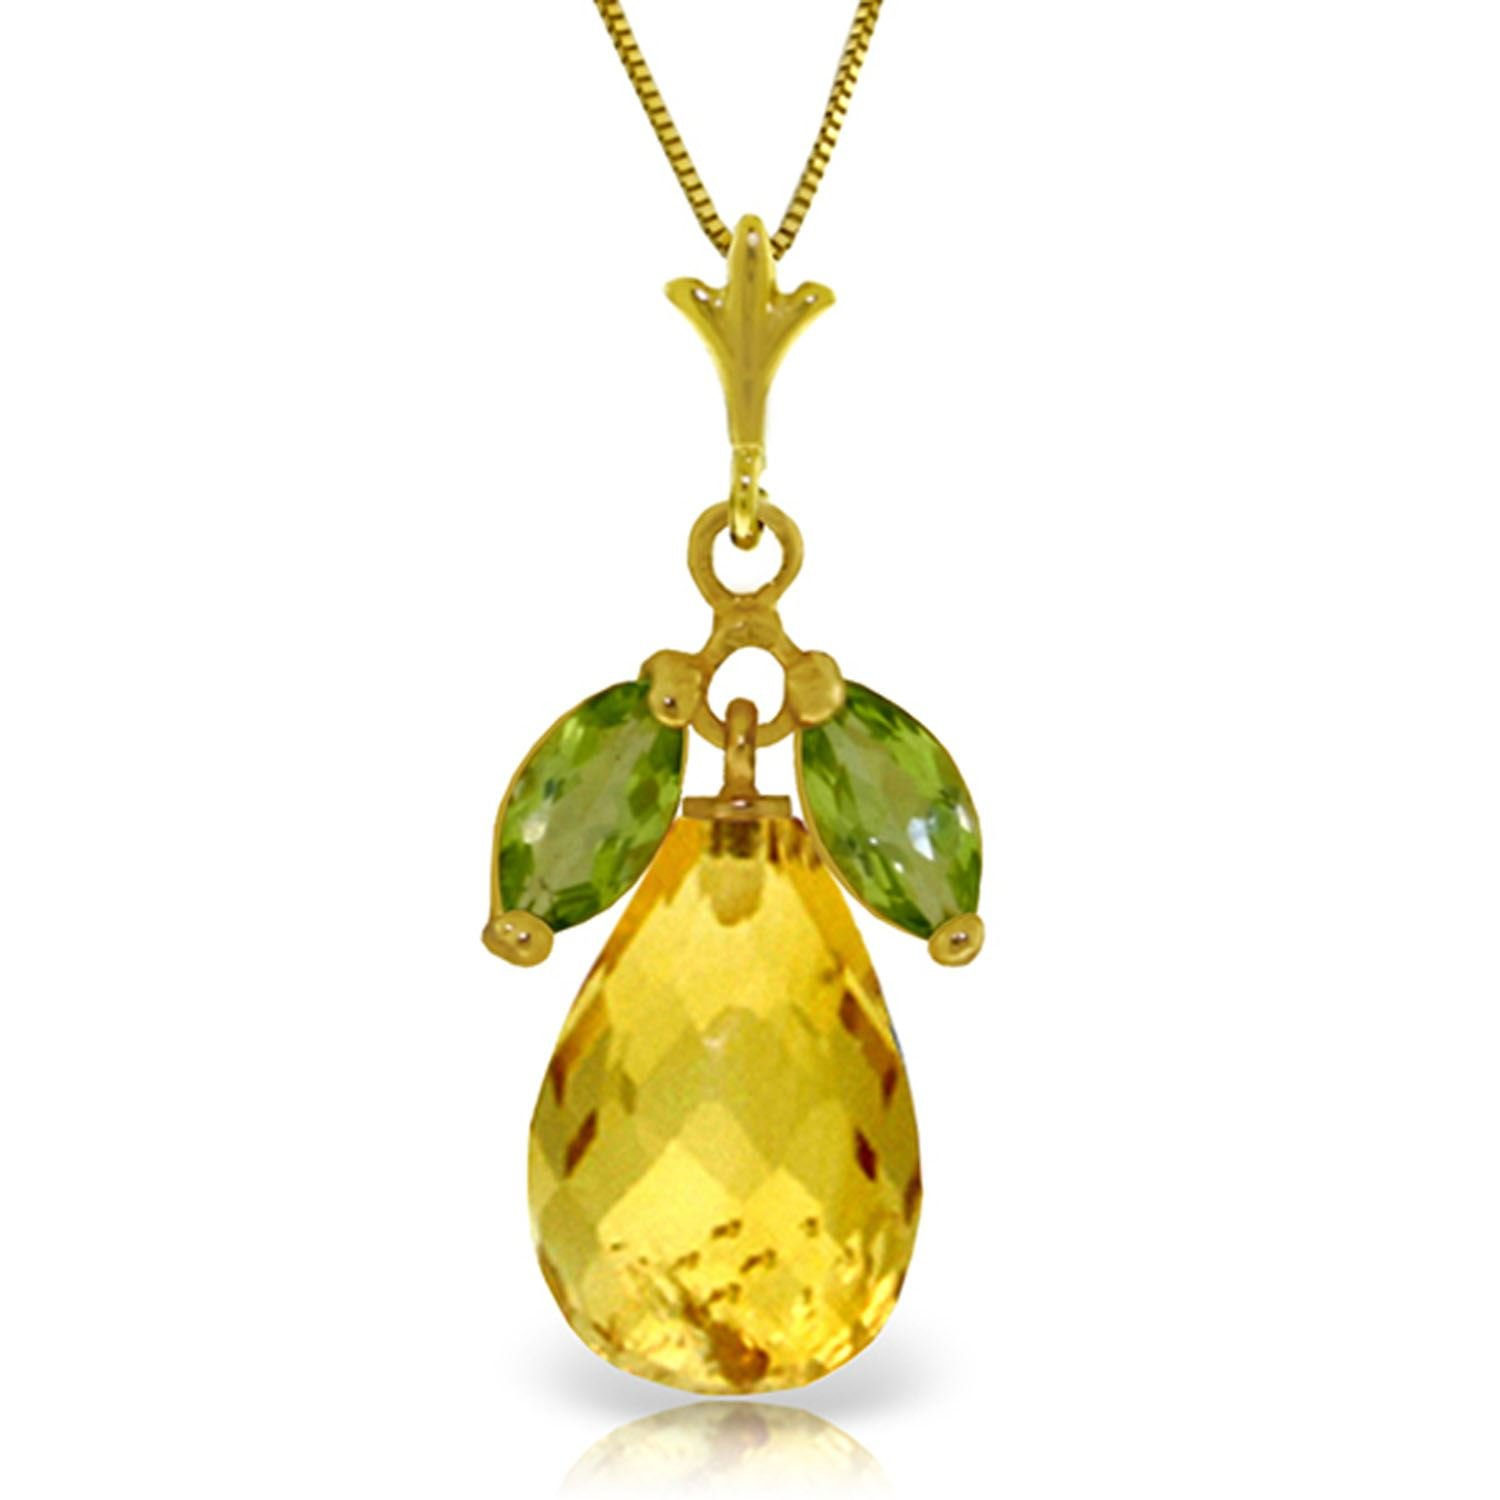 ALARRI 7.2 Carat 14K Solid Gold Necklace Natural Peridot Citrine with 20 Inch Chain Length